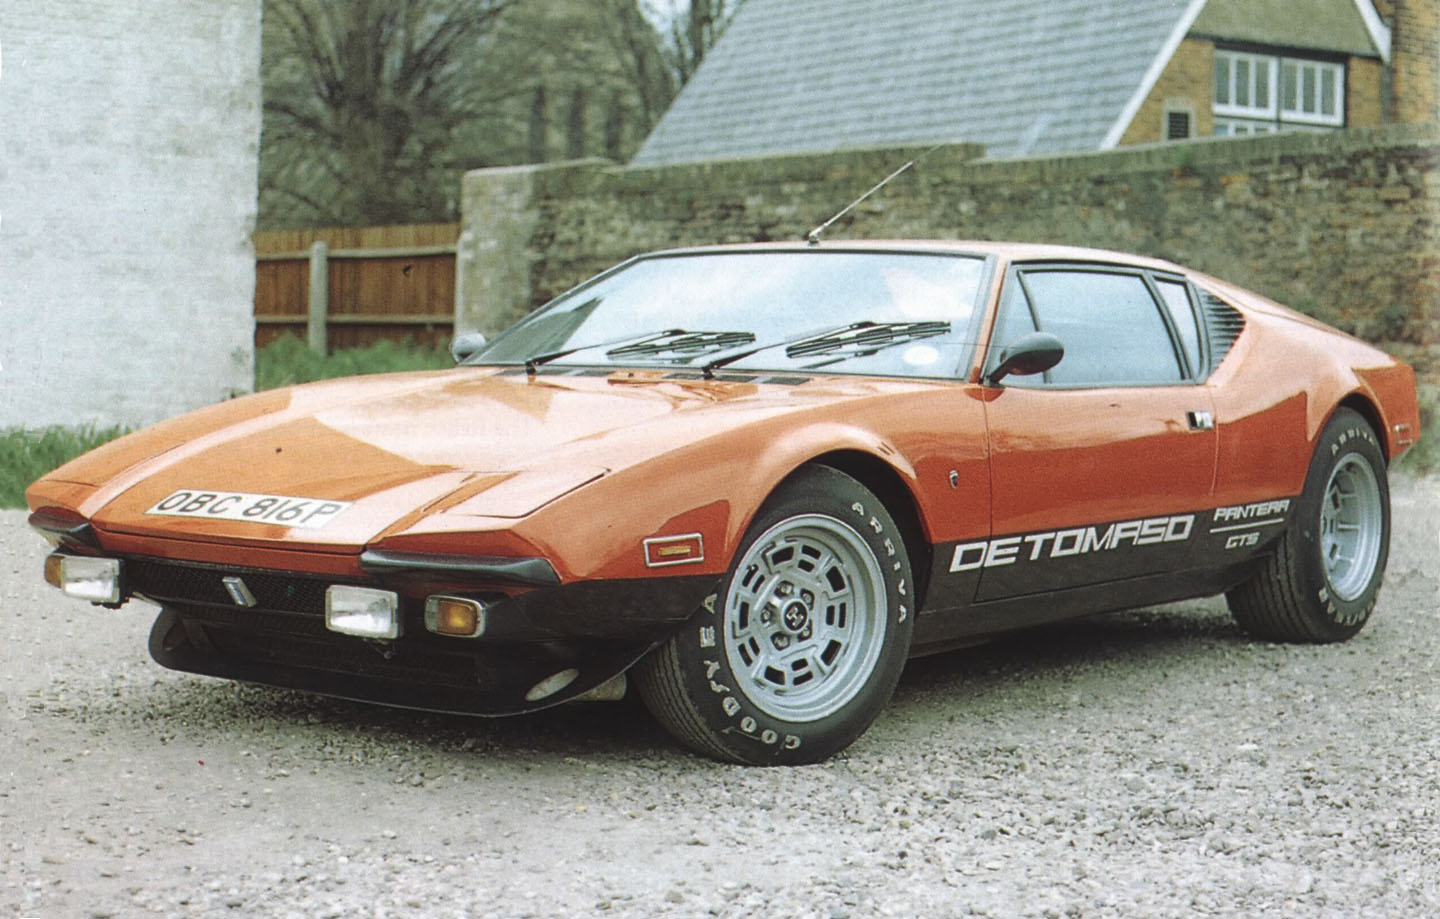 1970s supercars de tomaso pantera detomaso. Black Bedroom Furniture Sets. Home Design Ideas